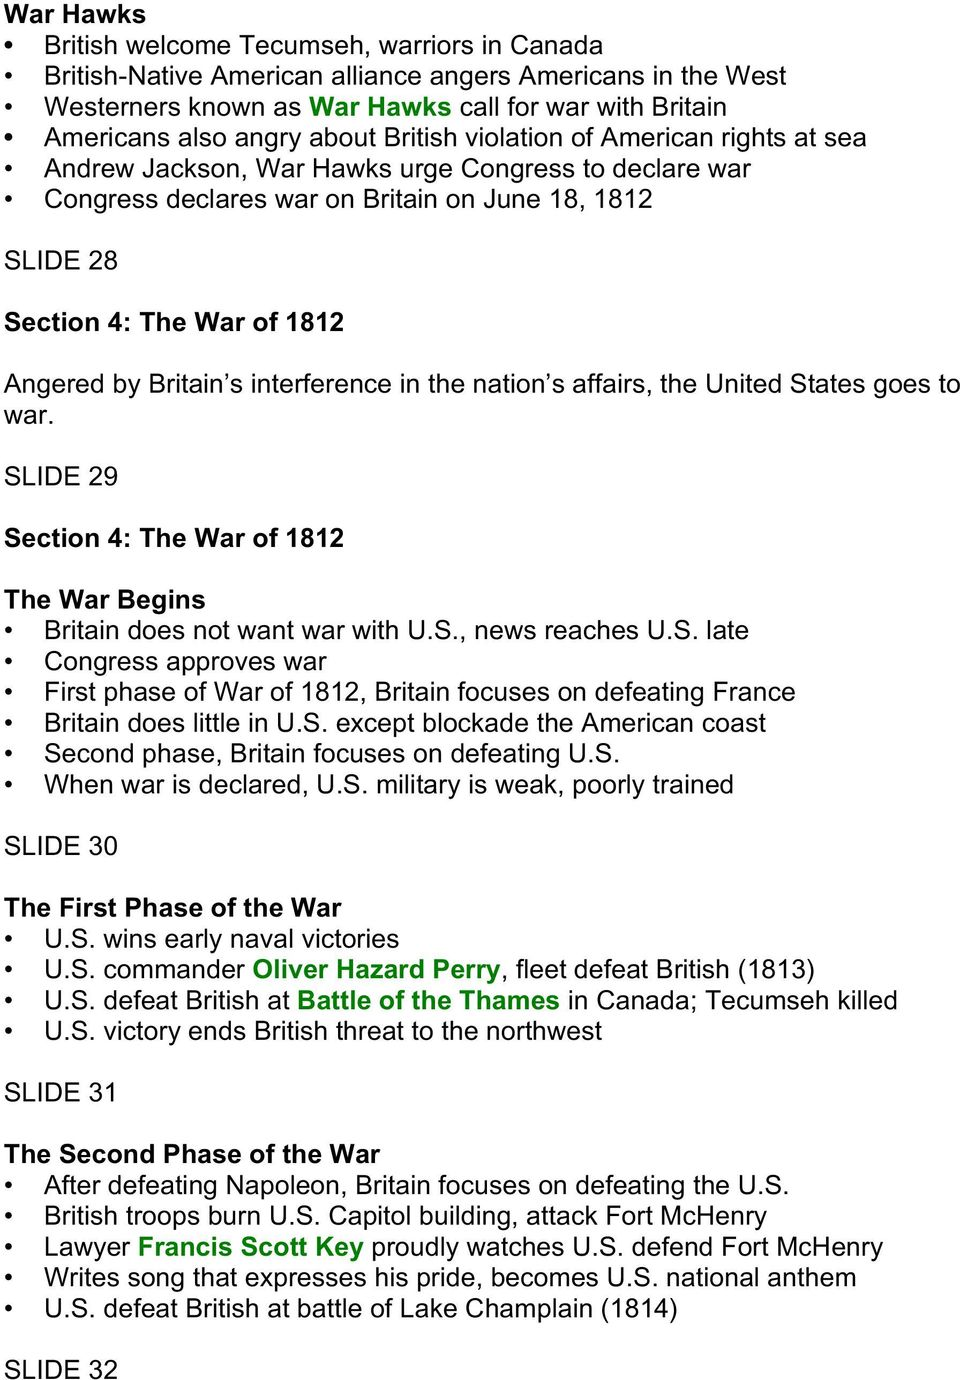 Britain s interference in the nation s affairs, the United States goes to war. SLIDE 29 Section 4: The War of 1812 The War Begins Britain does not want war with U.S., news reaches U.S. late Congress approves war First phase of War of 1812, Britain focuses on defeating France Britain does little in U.